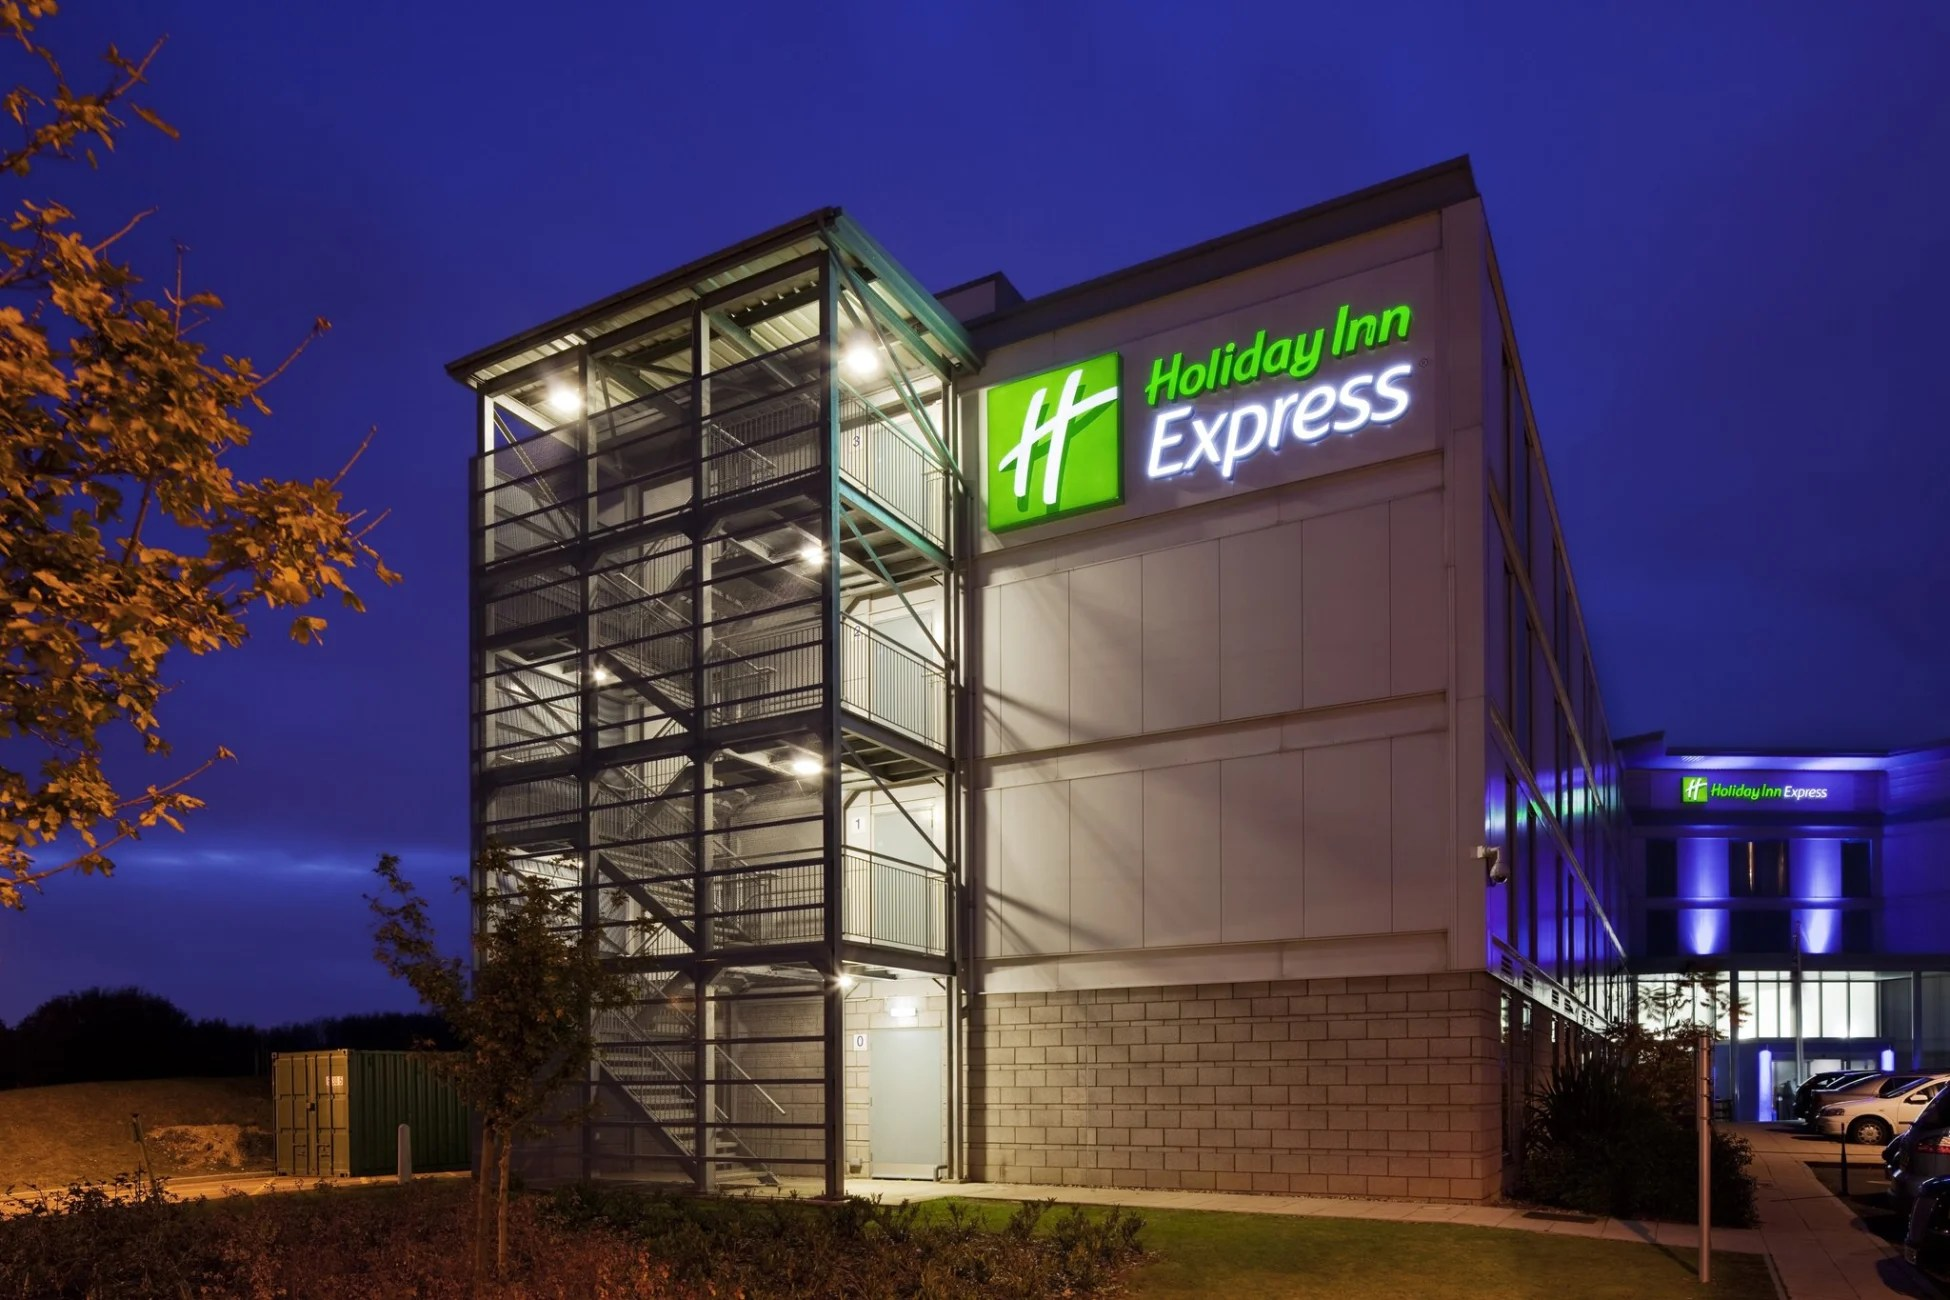 Stansted Car Village Shuttle Hotel Holiday Inn Express London Stansted Airport